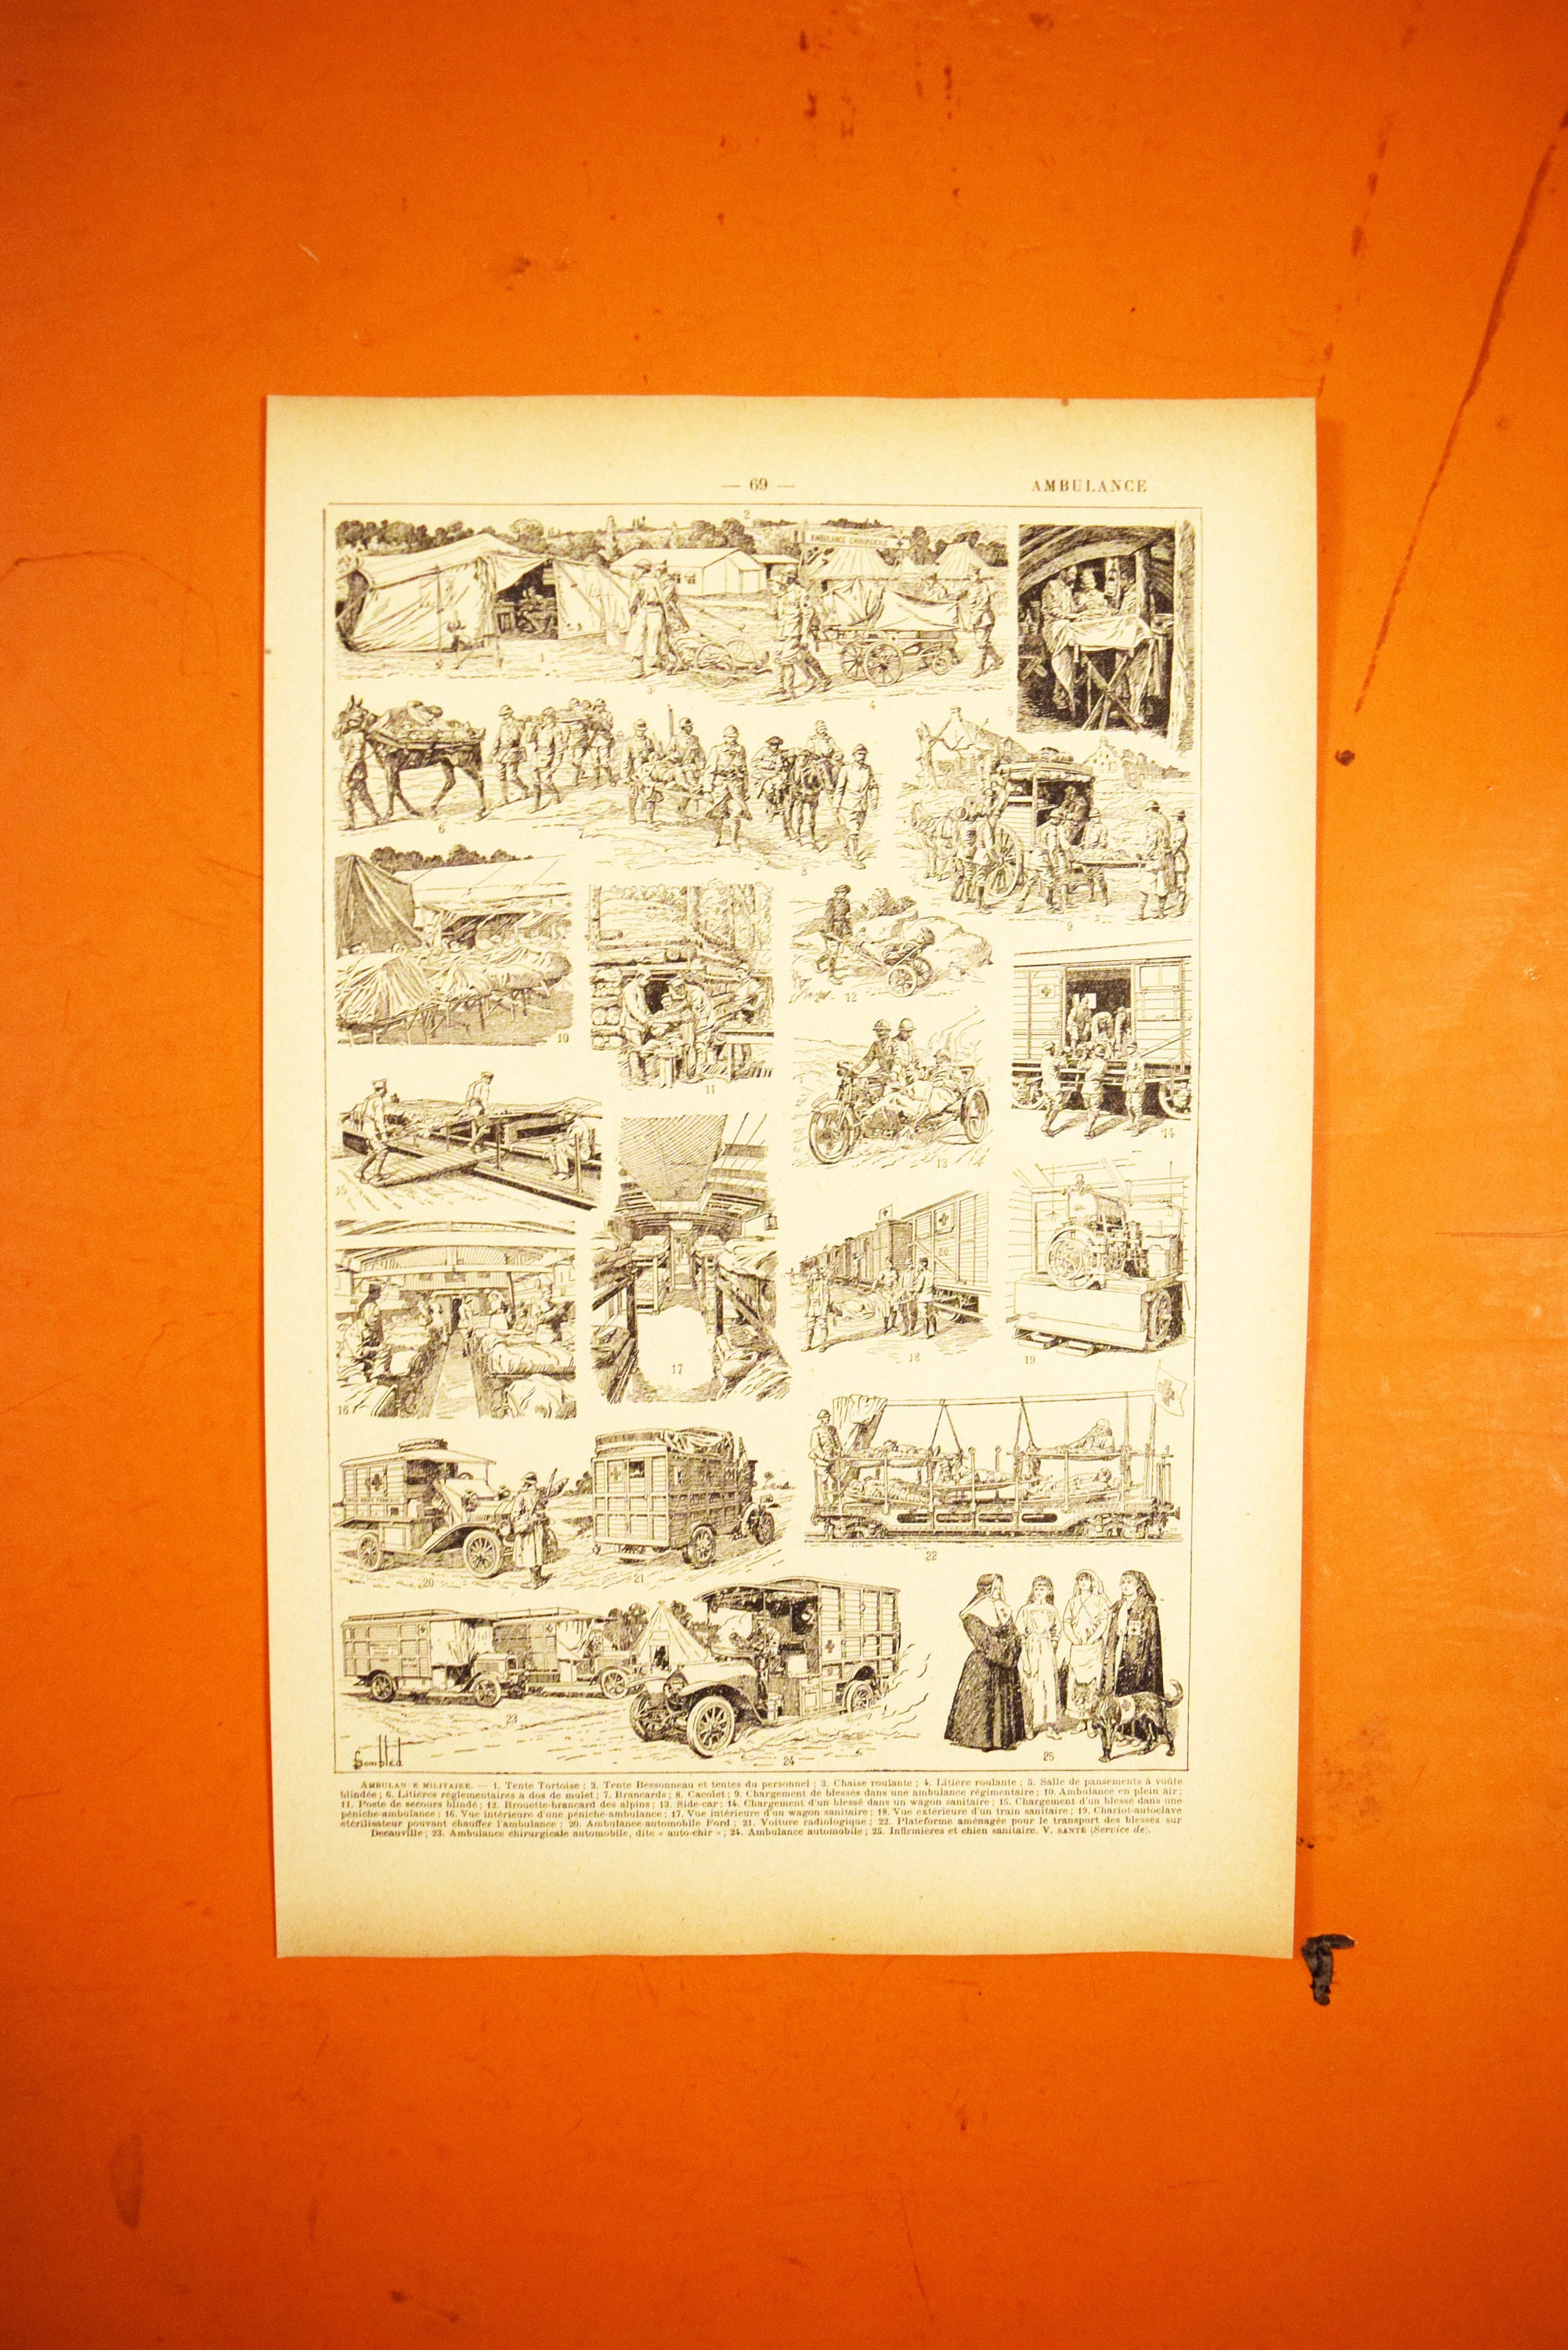 Ambulance Lithograph - 1920s Larousse - French Litho Sheet - Printed in Paris, France - 100% Original